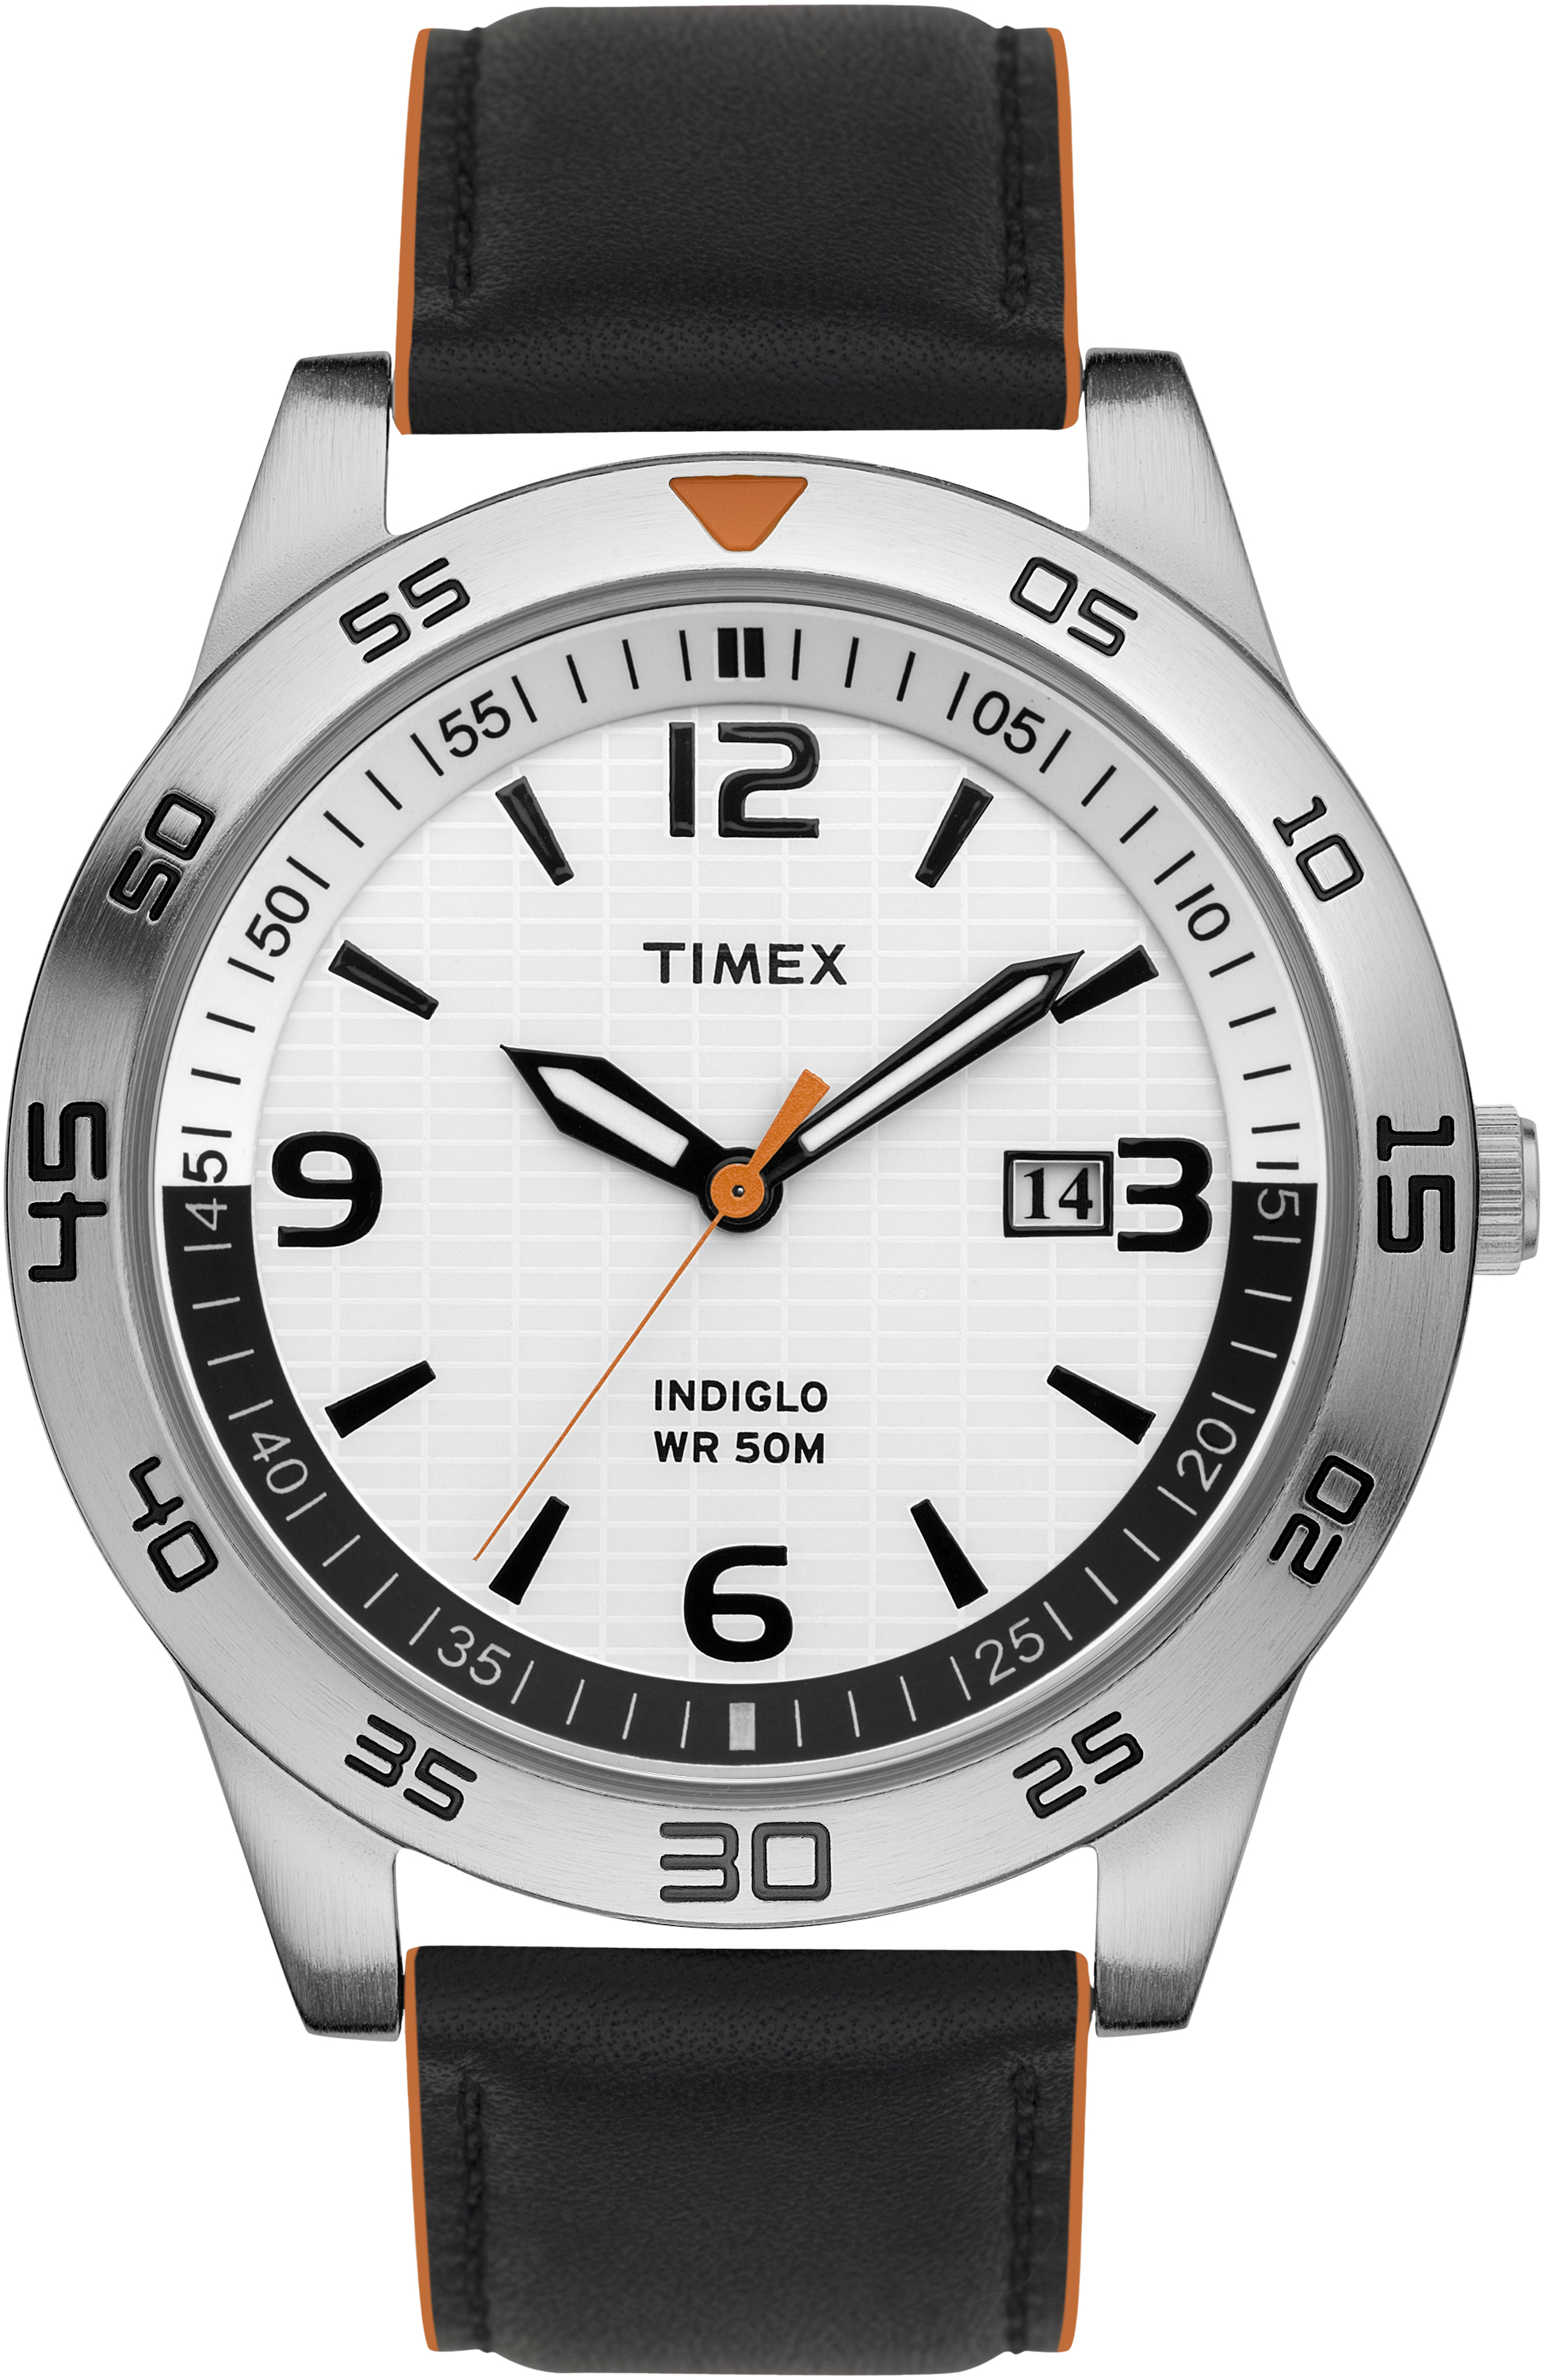 Timex T2N695 Men's Elevated Classics Dress Sport White Indiglo Face Watch at Sears.com